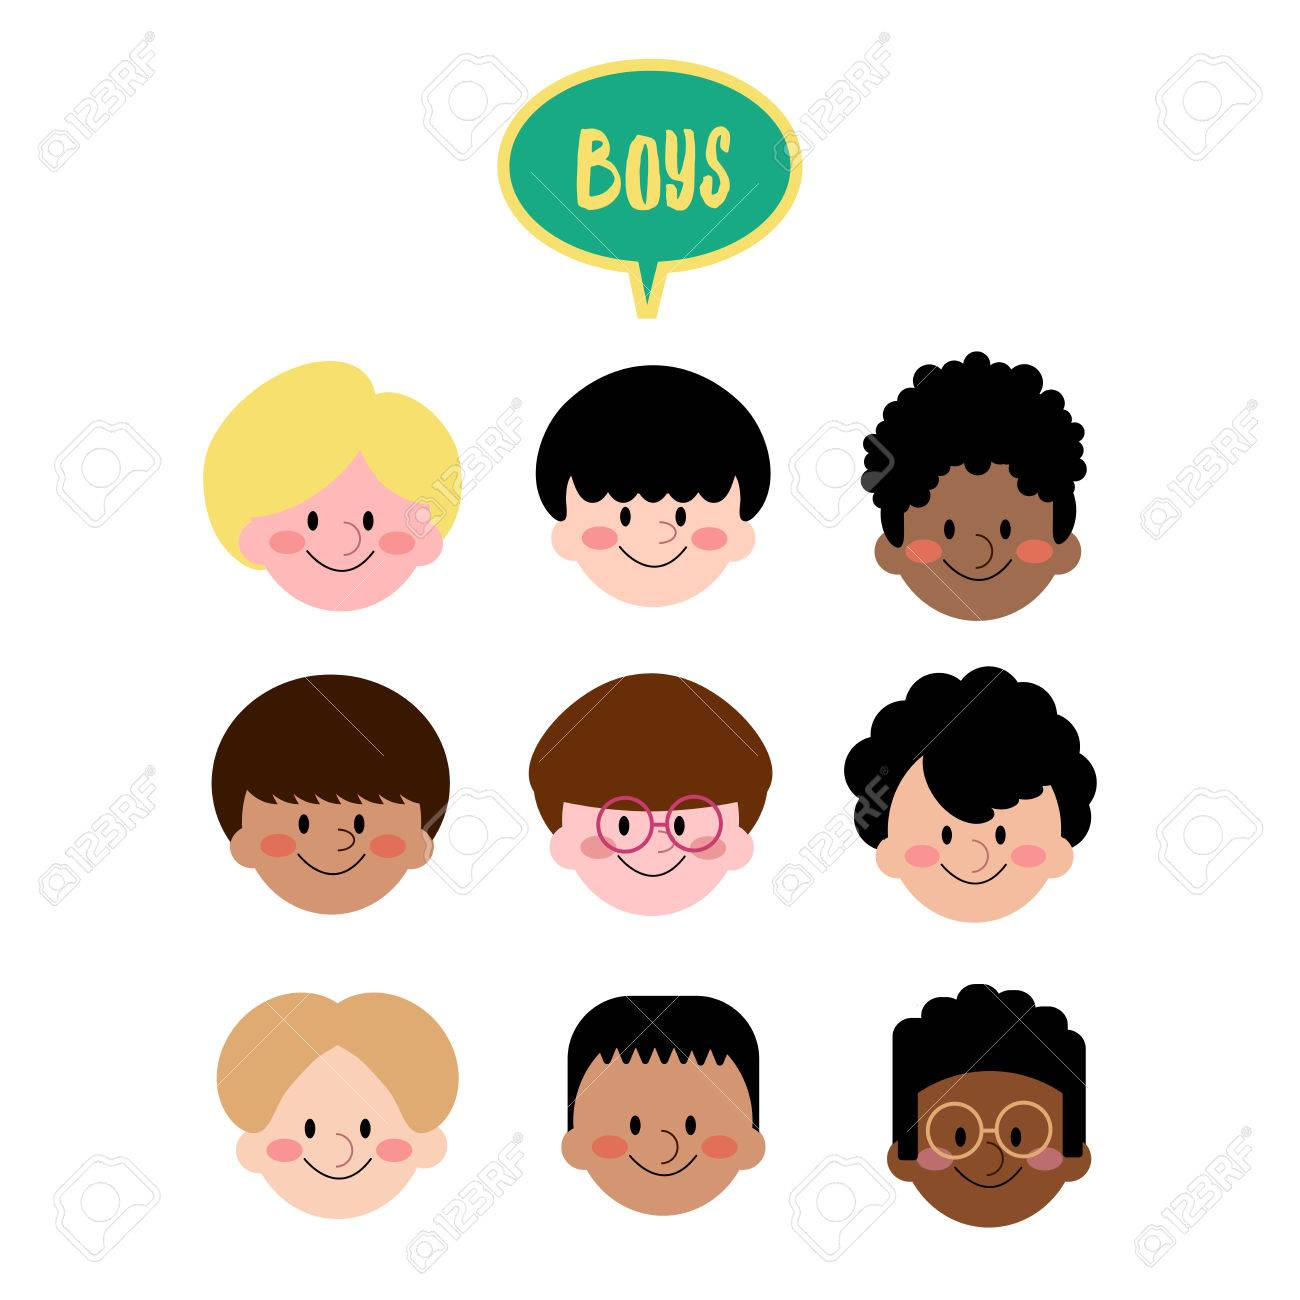 Vector Boys Face Flat Design Collection Of Different Ethnic